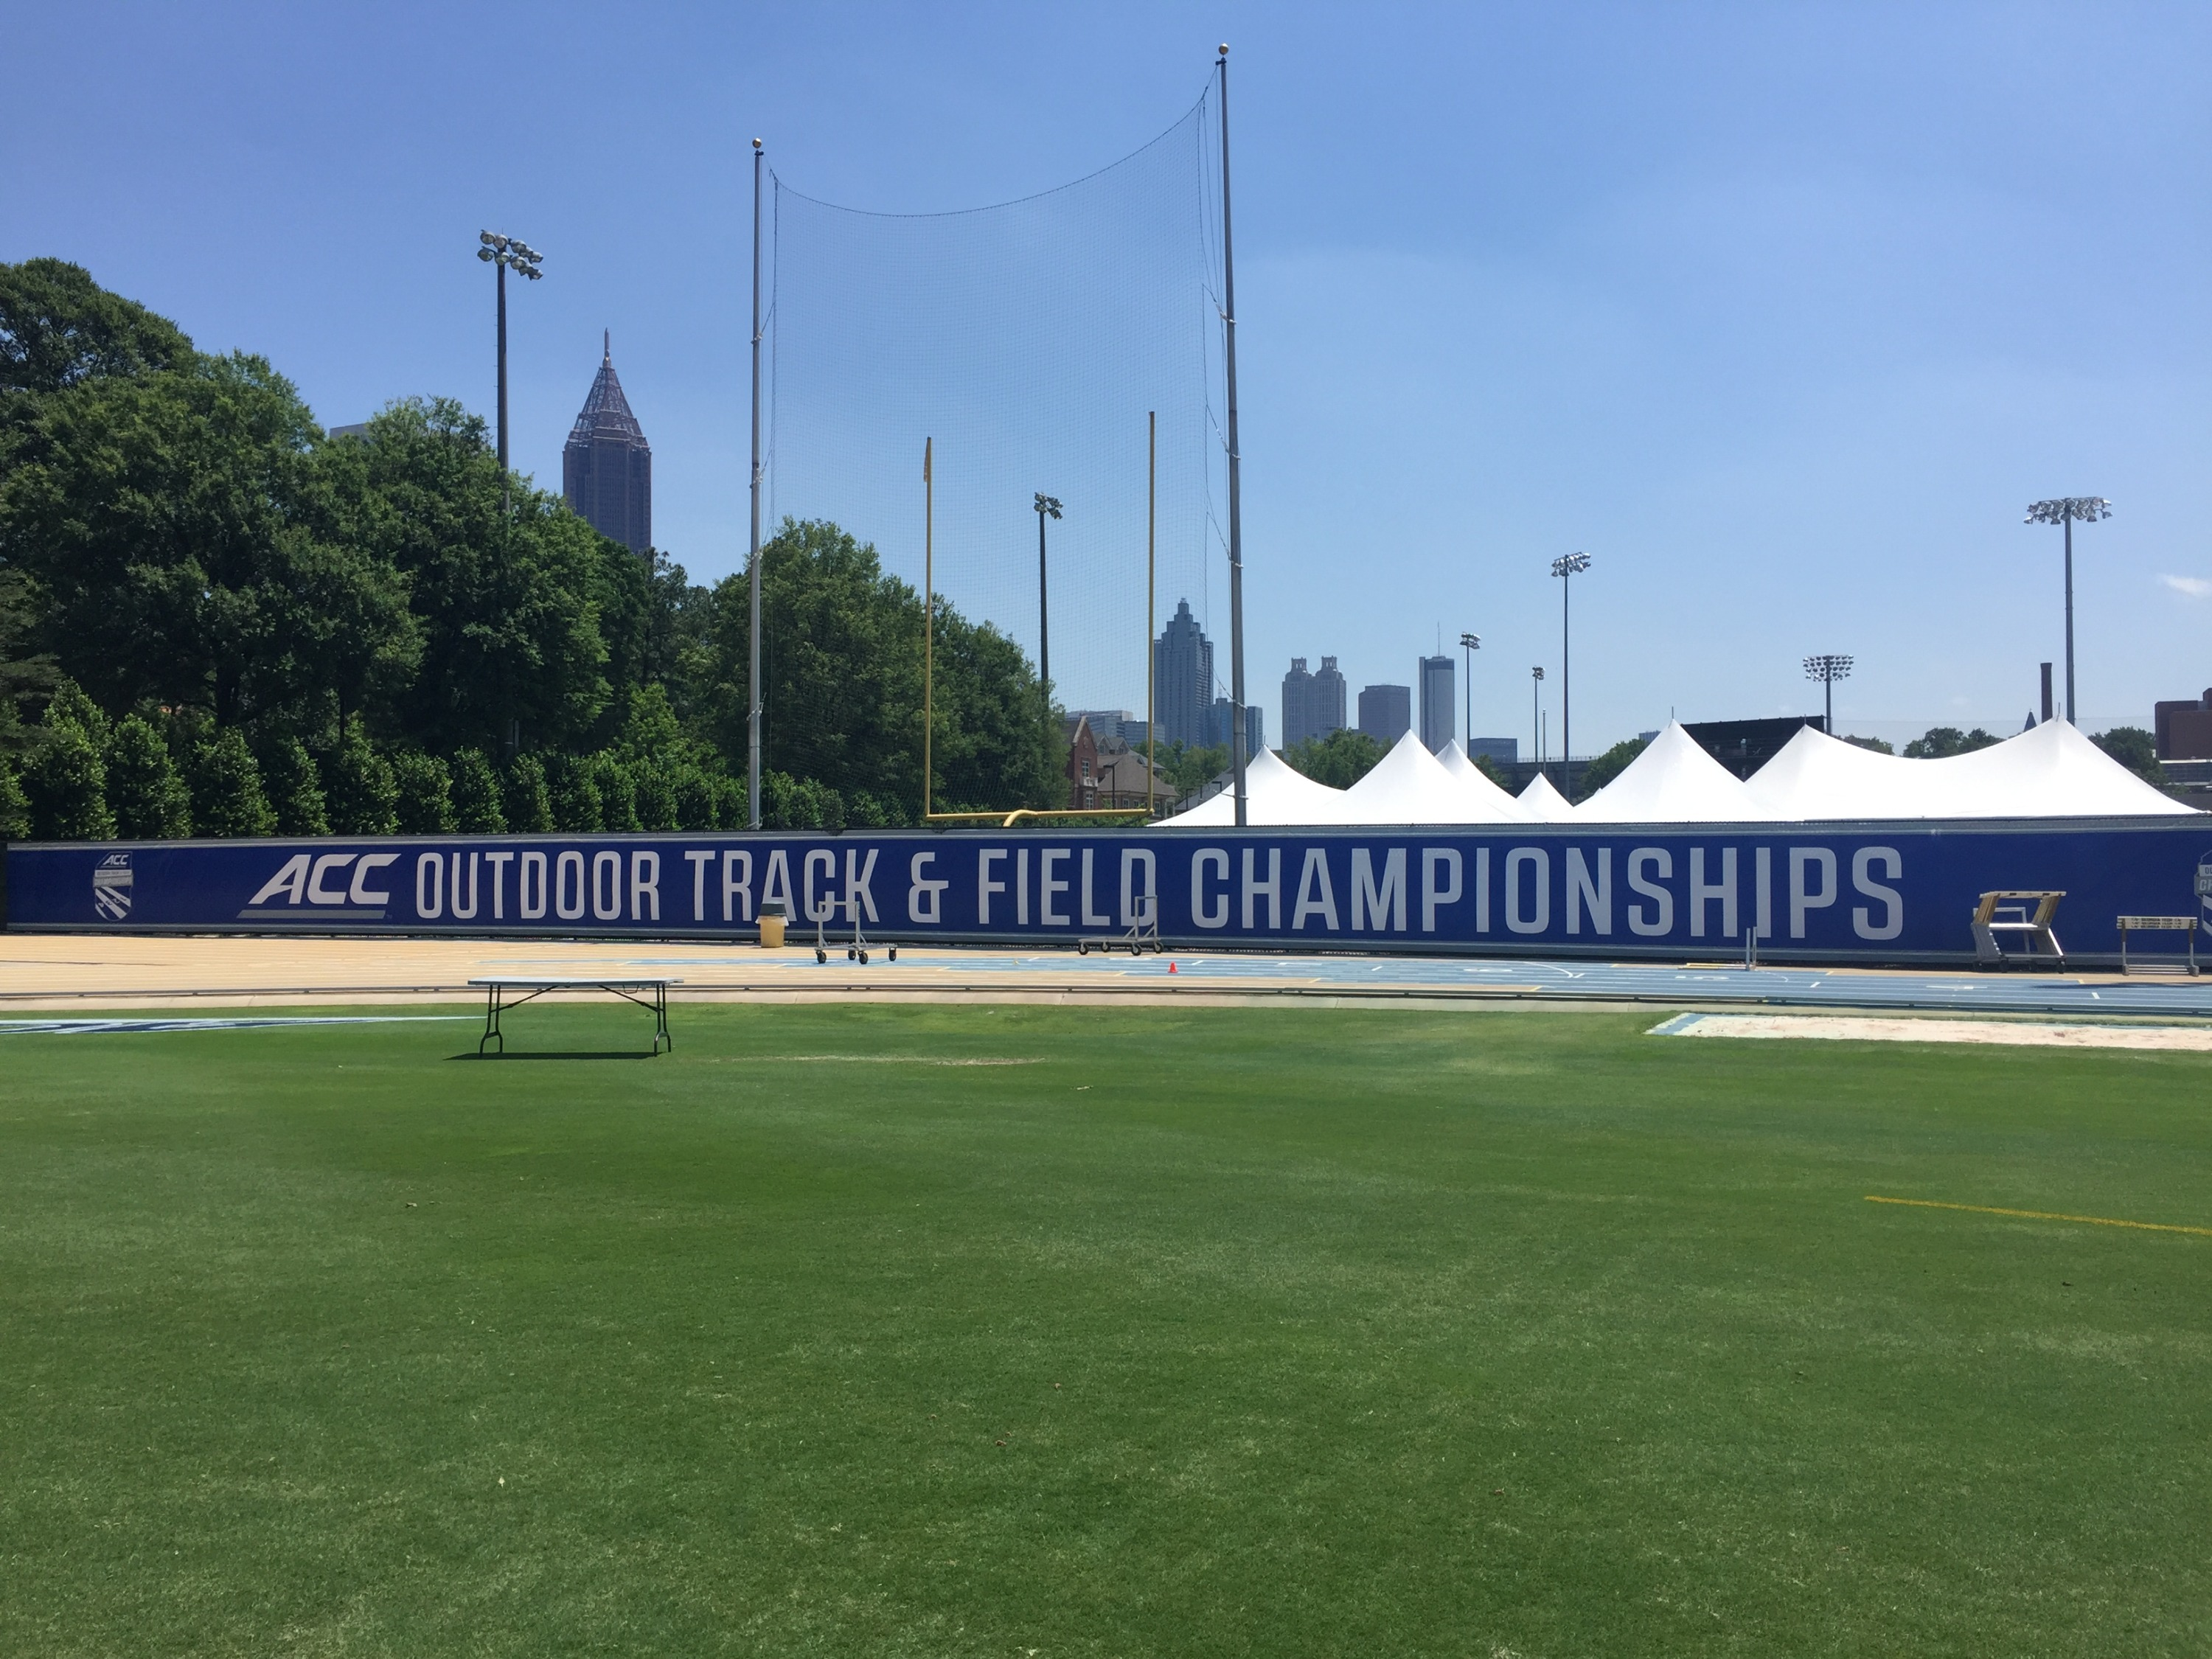 Griffin track ACC Championships 2017